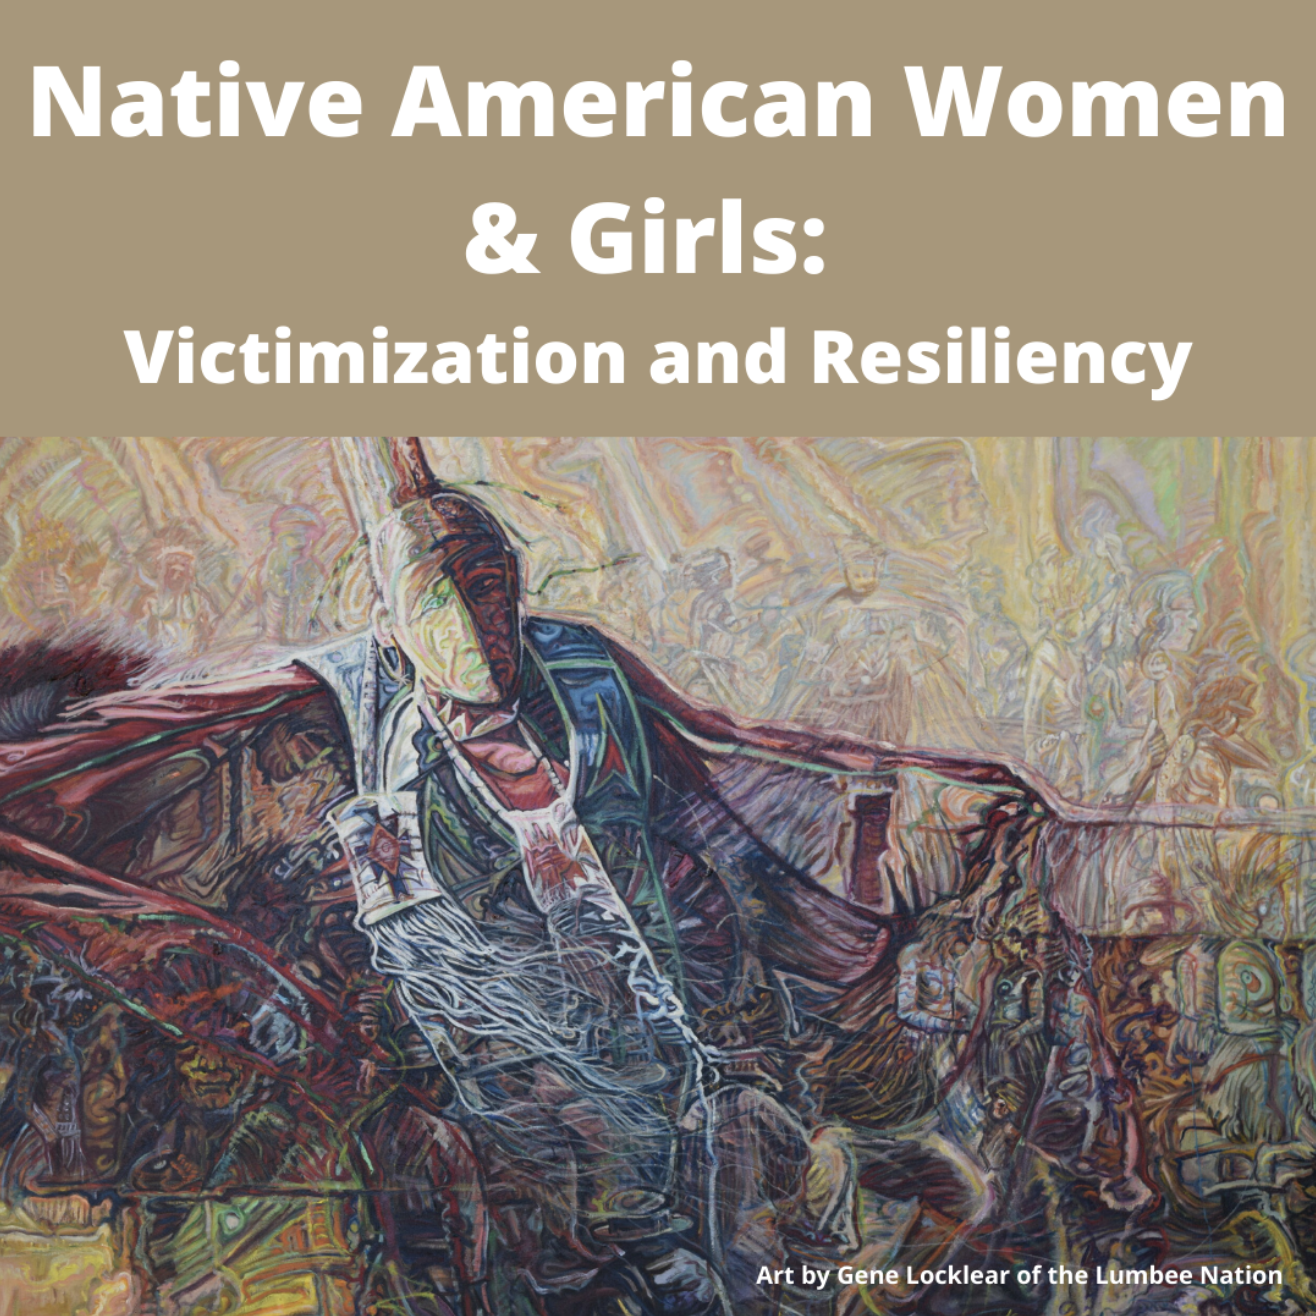 Native American Women & Girls: Victimization and Resiliency